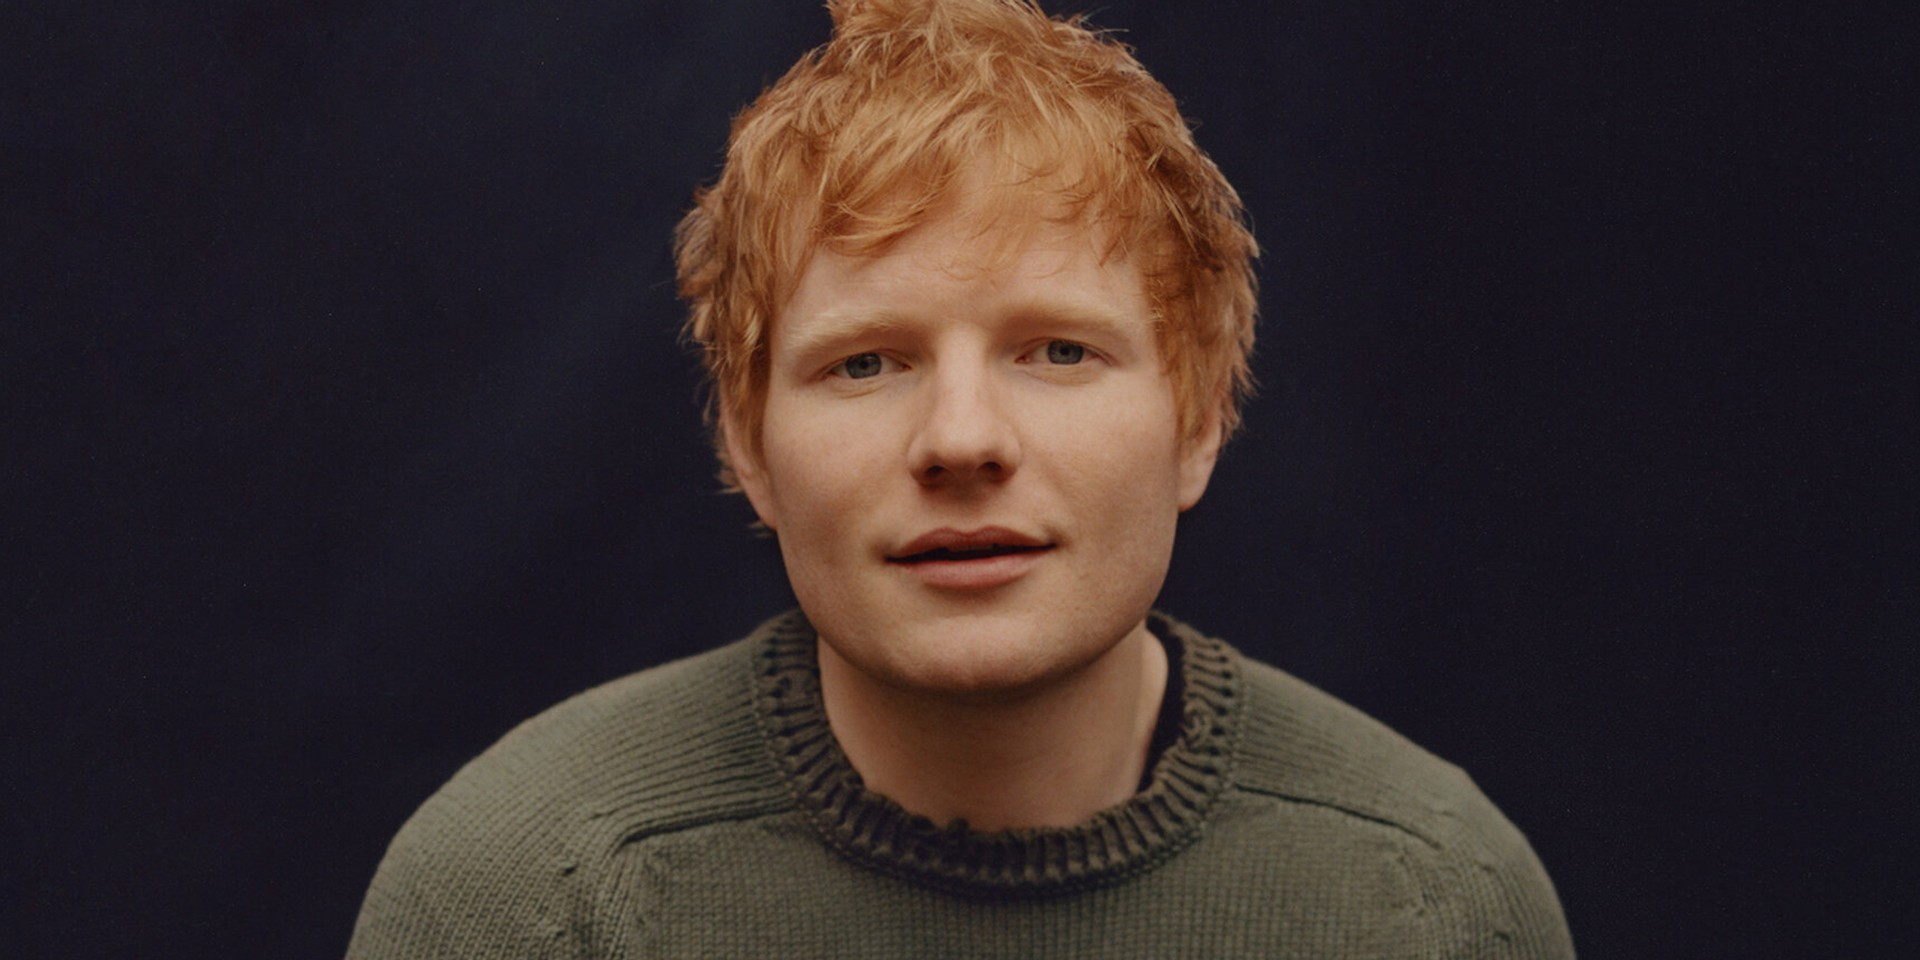 Here's how you can watch Ed Sheeran's special performance on Philippine TV this weekend